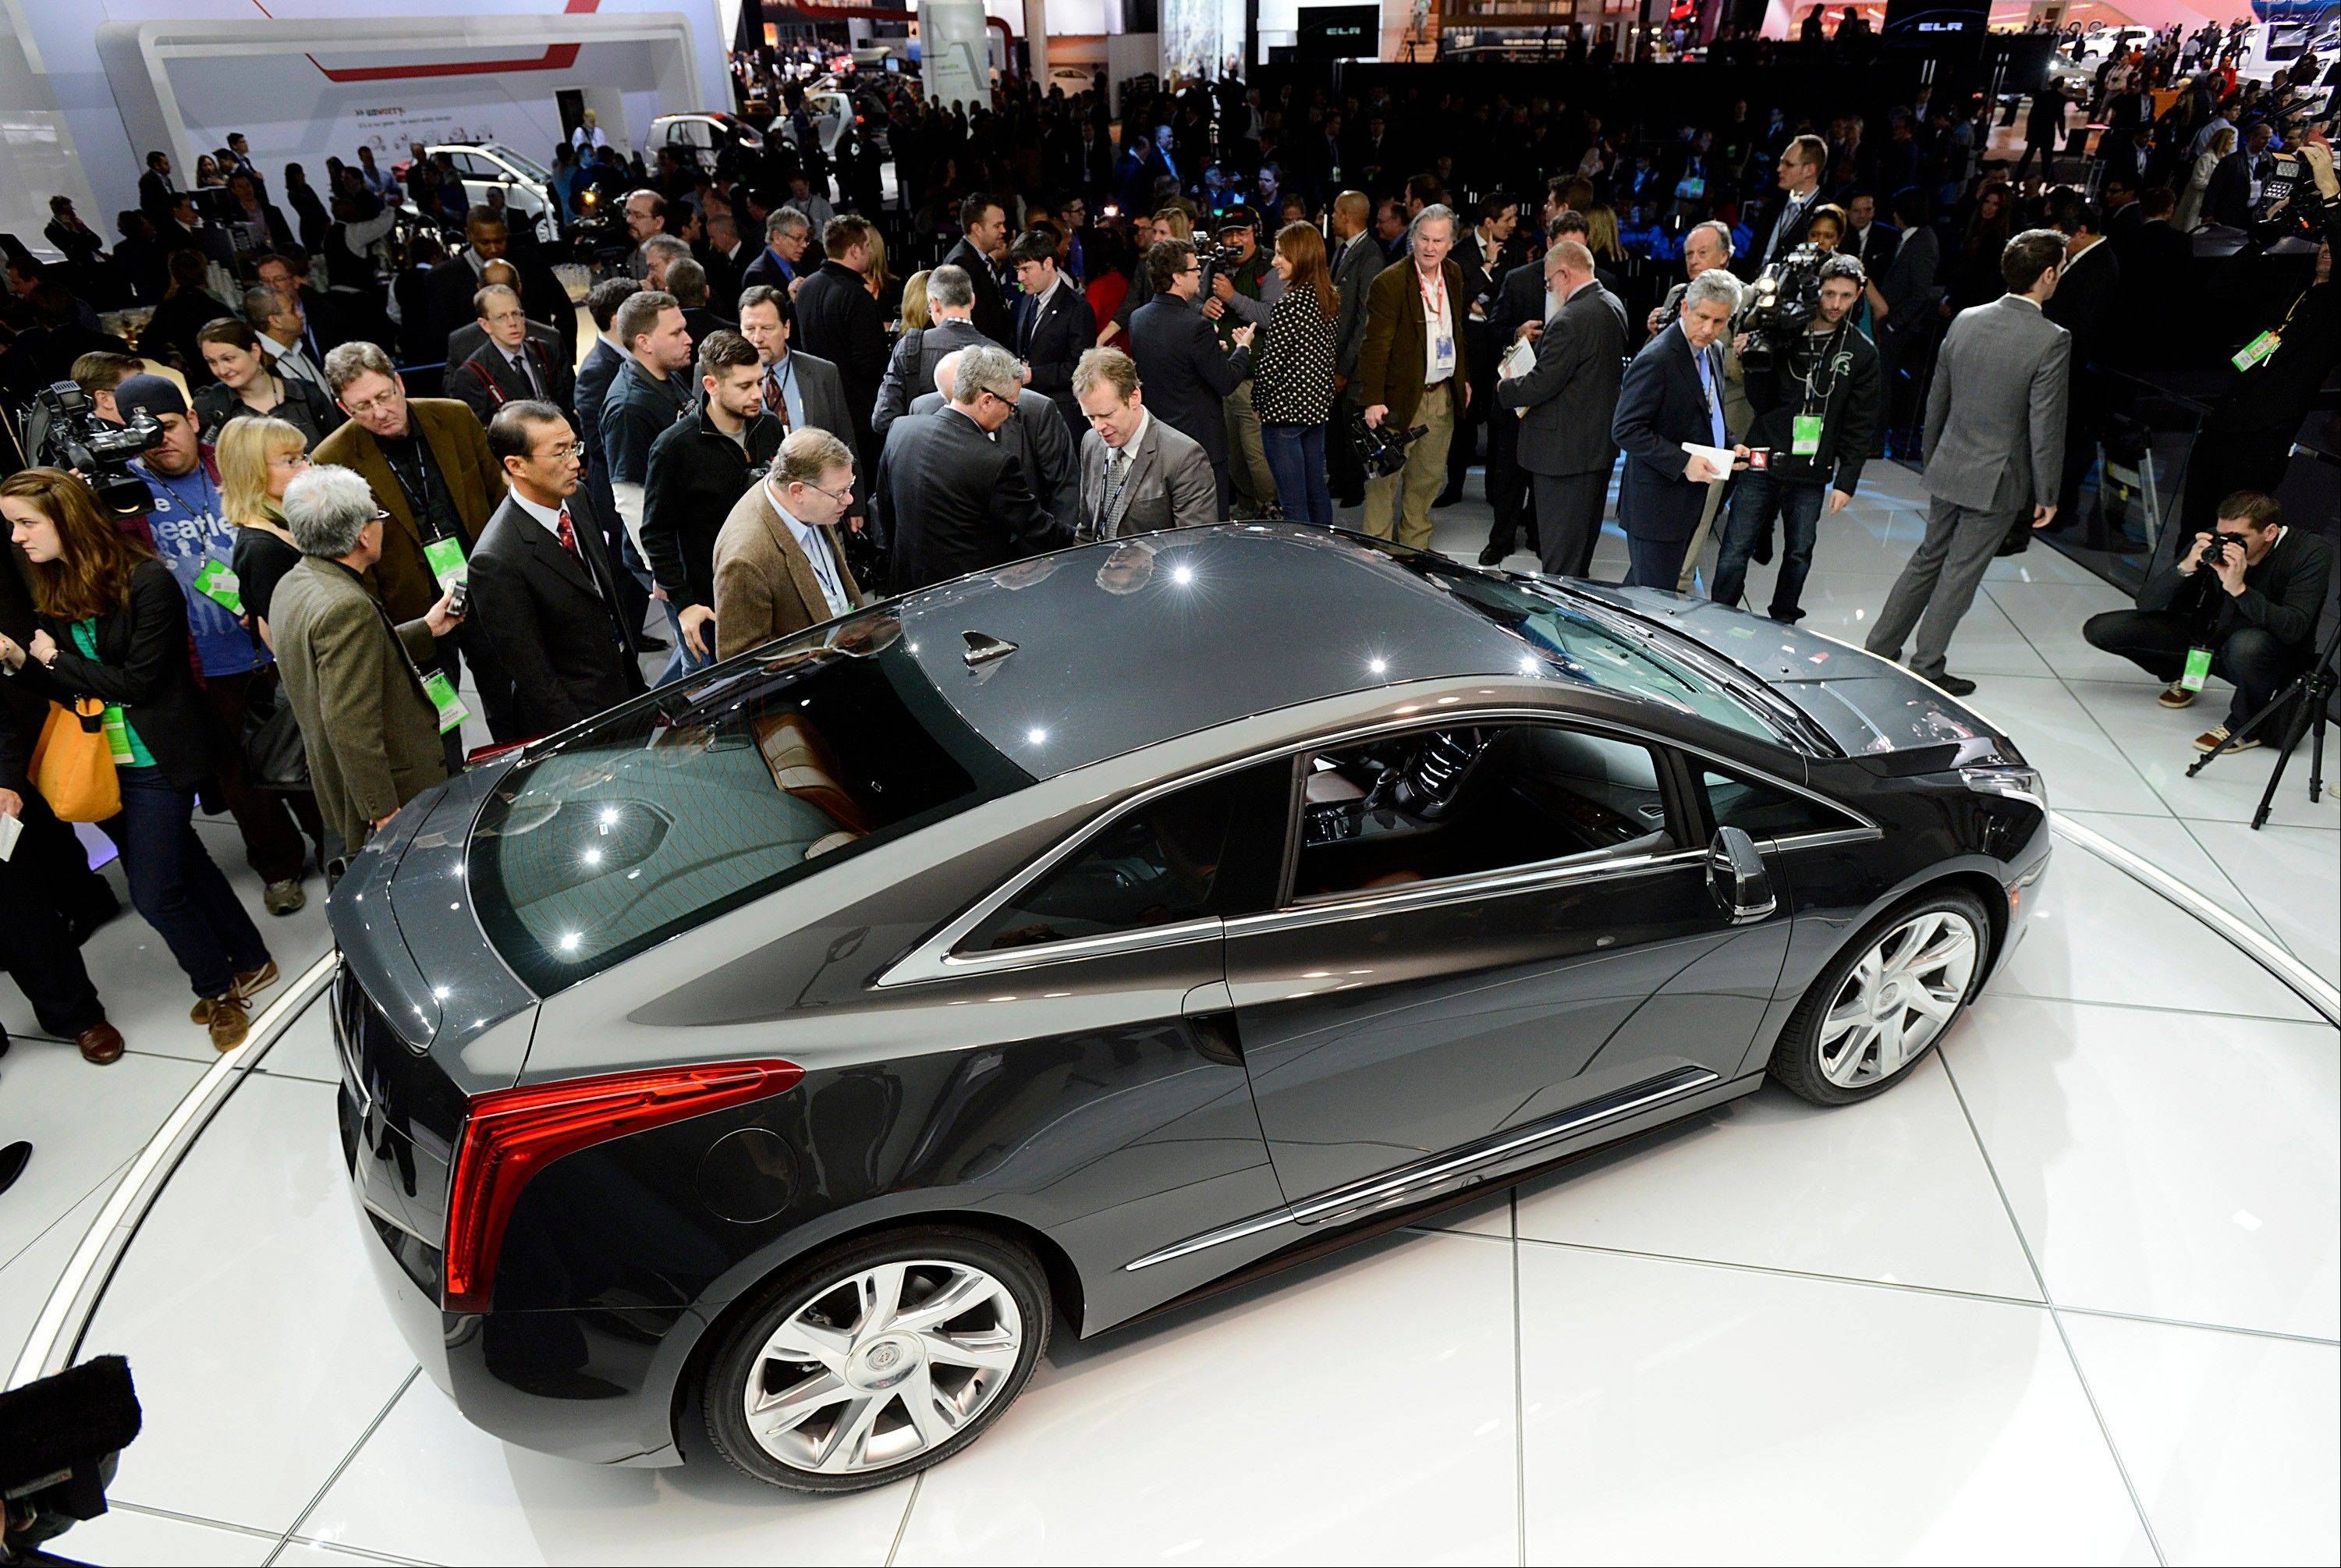 Members of the media view the General Motors Co. (GM) Cadillac ELR coupe vehicle after the unveiling at the 2013 North American International Auto Show (NAIAS) in Detroit, Michigan, U.S., on Tuesday, Jan. 15, 2013. The Detroit auto show runs through Jan. 27 and will display over 500 vehicles, representing the most innovative designs in the world.